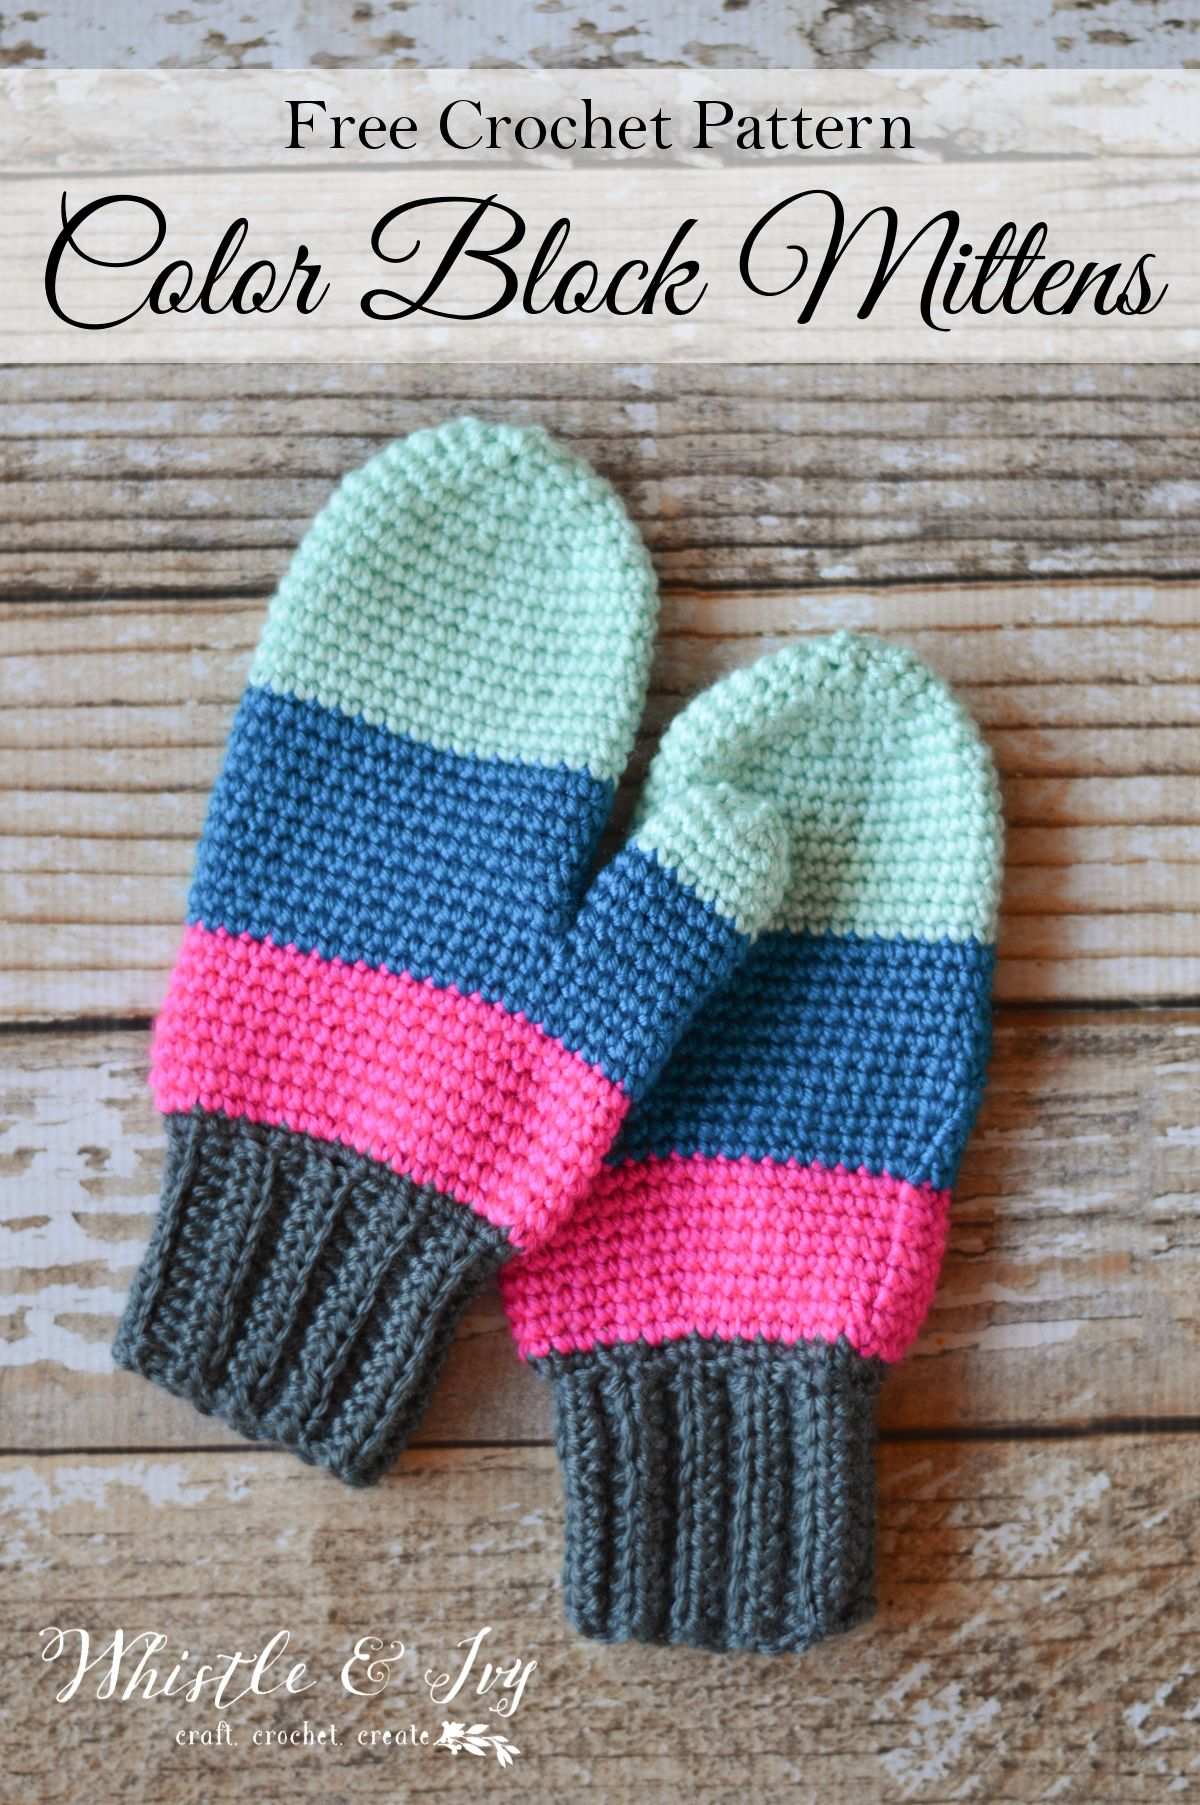 Crochet Color Block Mittens | Pinterest | Free crochet, Bright ...